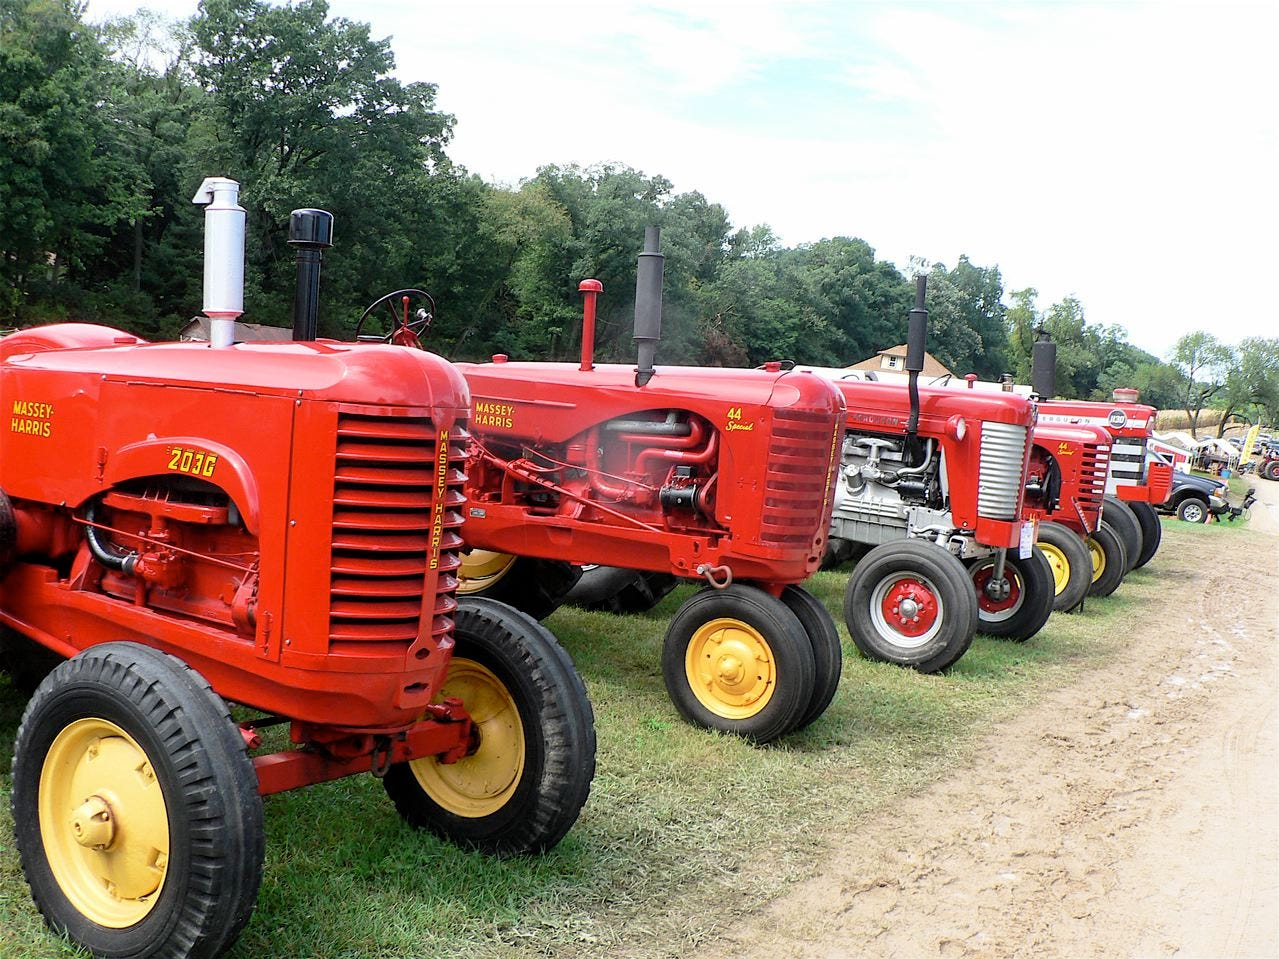 A few of the shows featured tractor, the Massey Harris, on display.